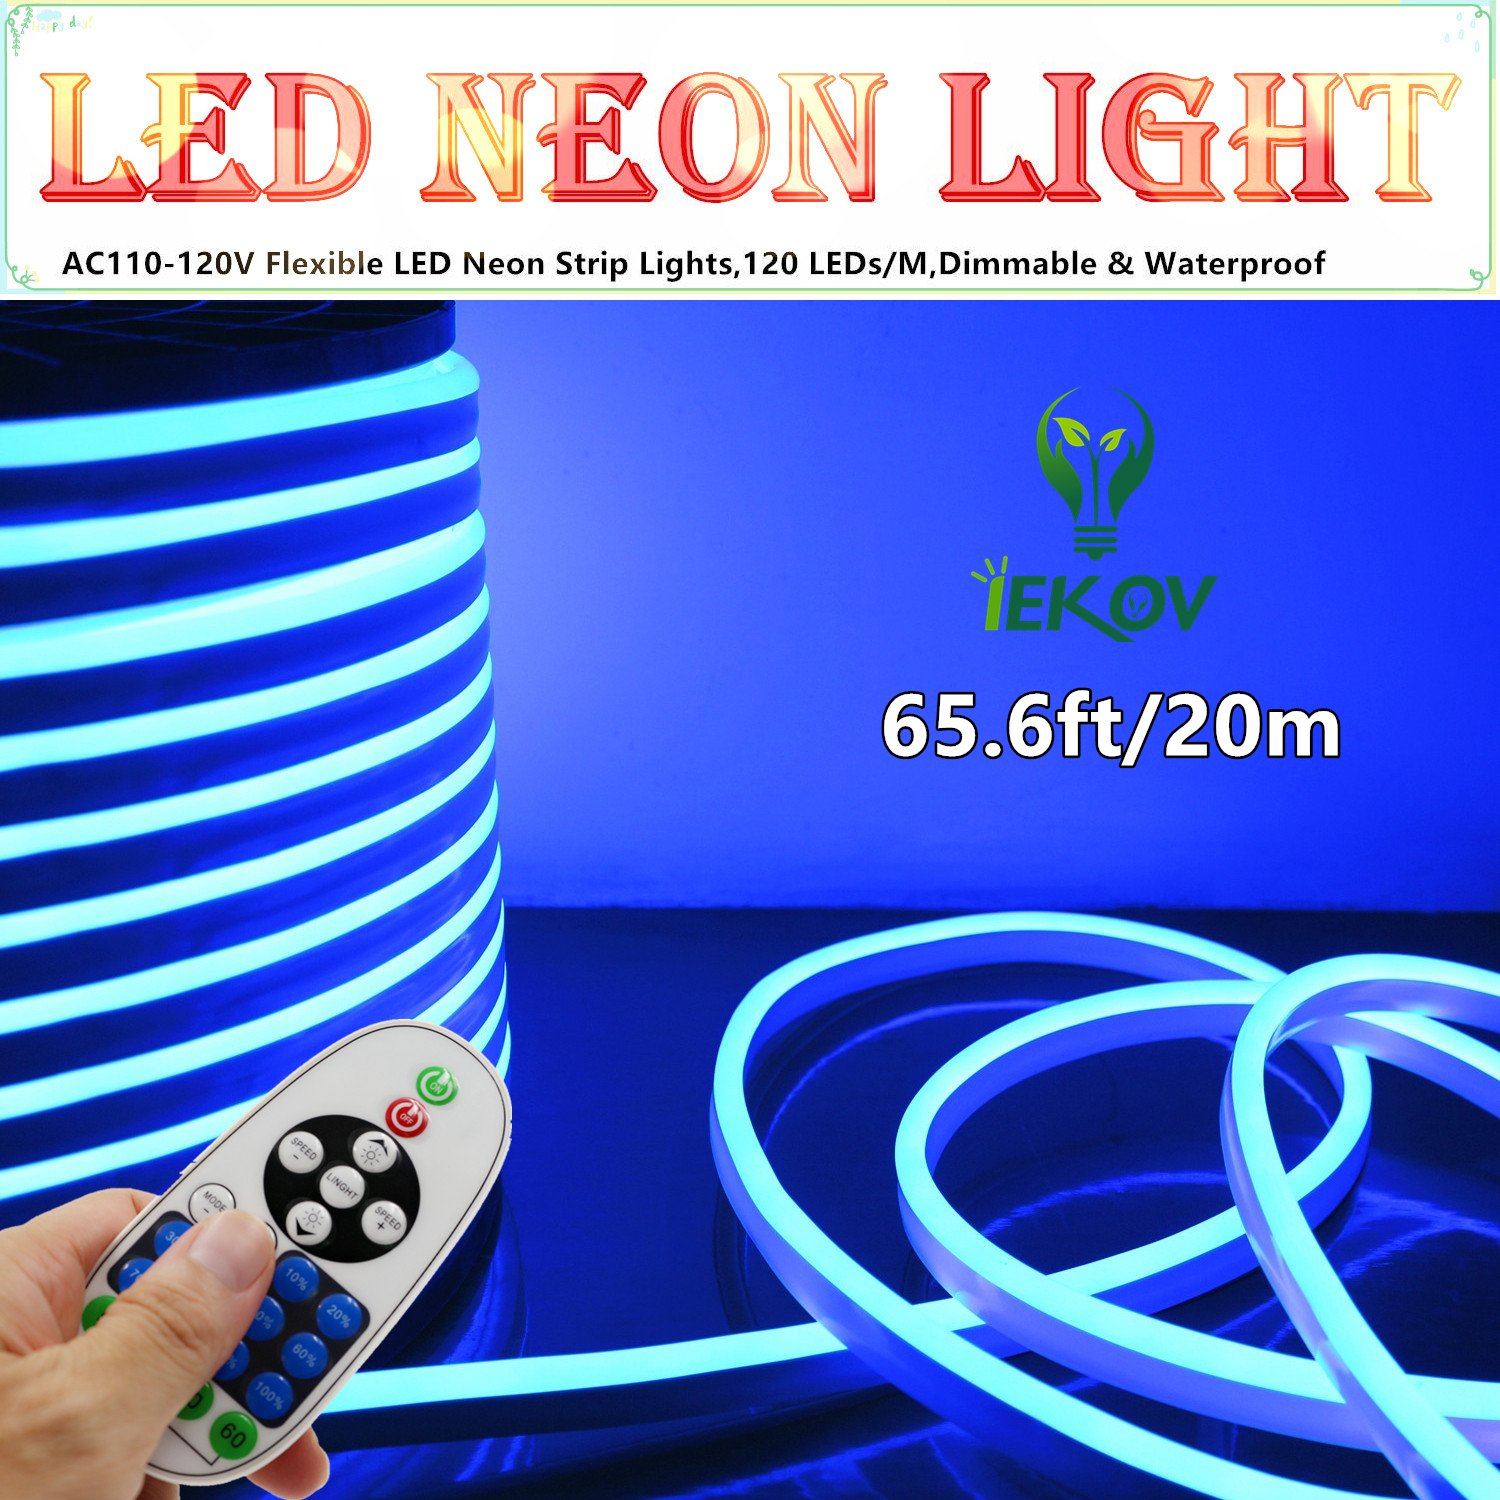 LED NEON LIGHT, IEKOV™ AC 110-120V Flexible LED Neon Strip Lights, 120 LEDs/M, Dimmable, Waterproof 2835 SMD LED Rope Light + Remote Controller for Home Decoration (65.6ft/20m, Blue)